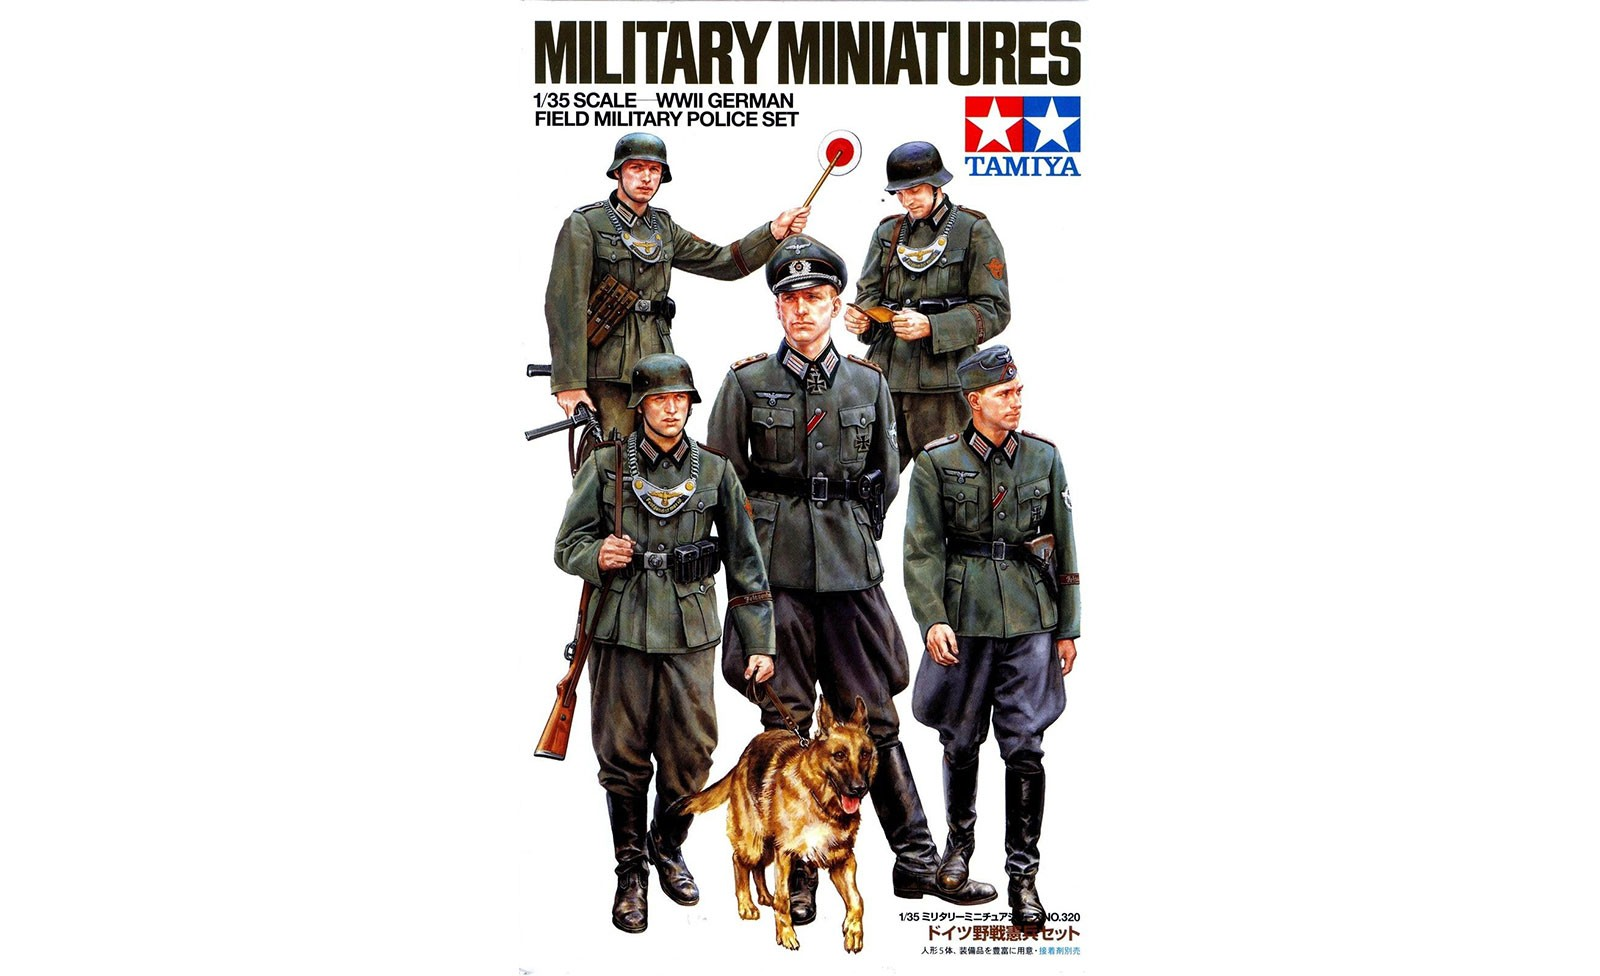 German Field Military Police Set  - Tamiya 35320 - plastic model kit - 1/35 scale